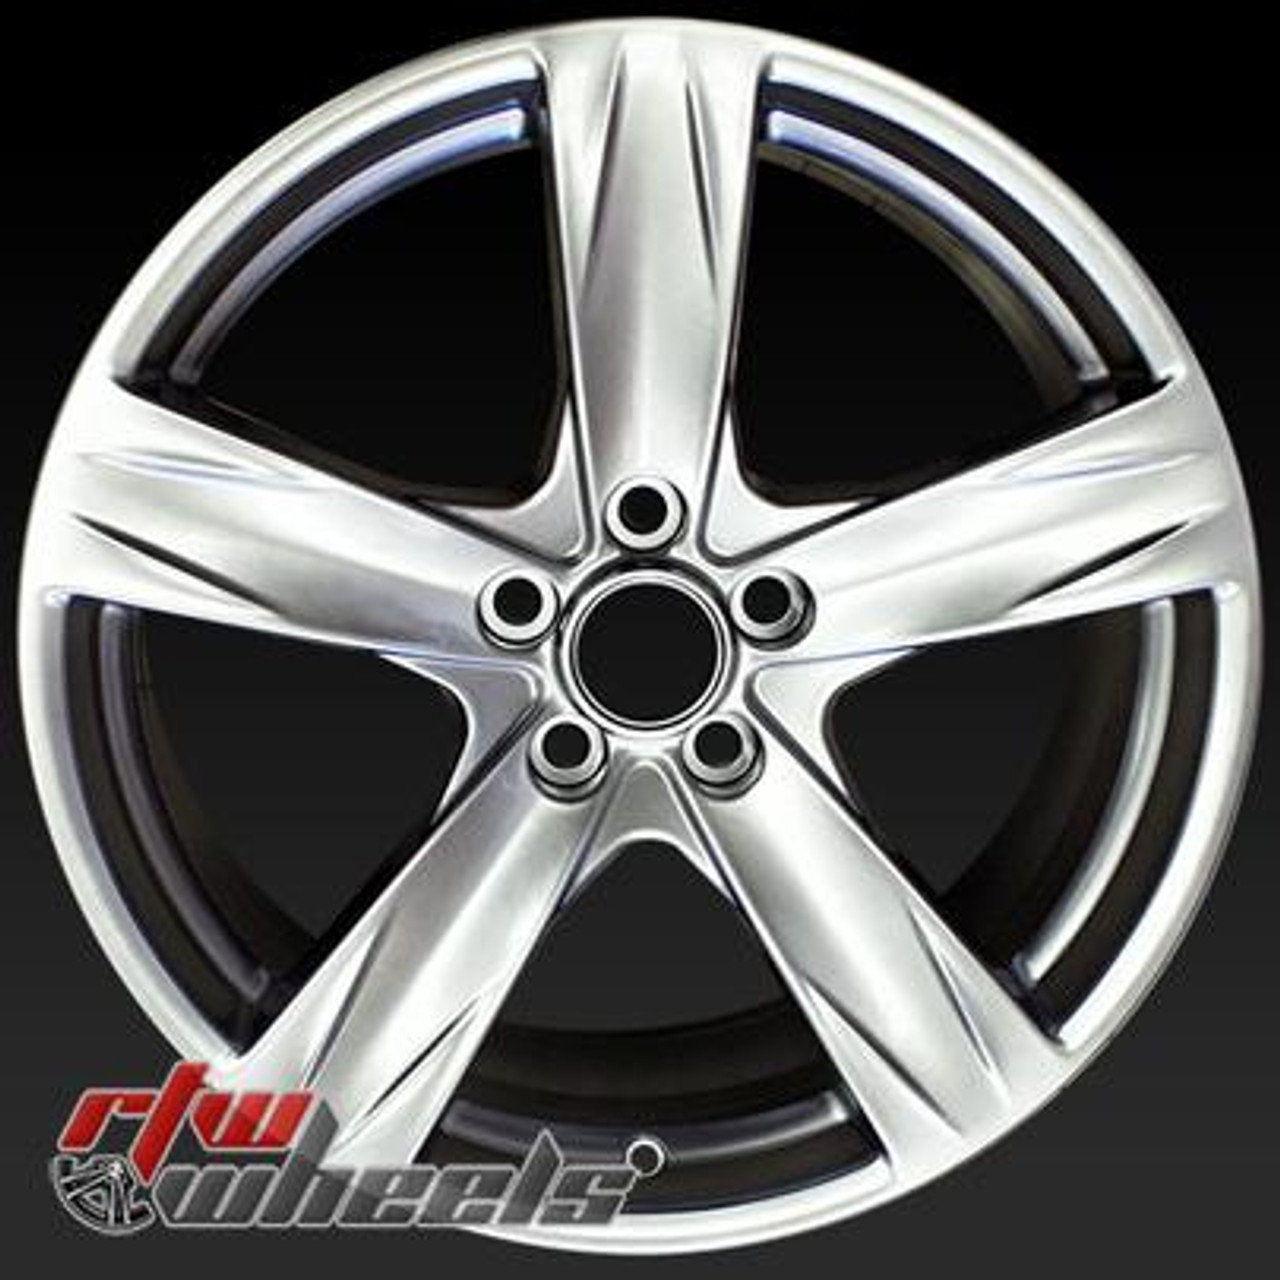 19 Ford Mustang Wheels For Sale 2013 2014 Hypersilver Rims 3910